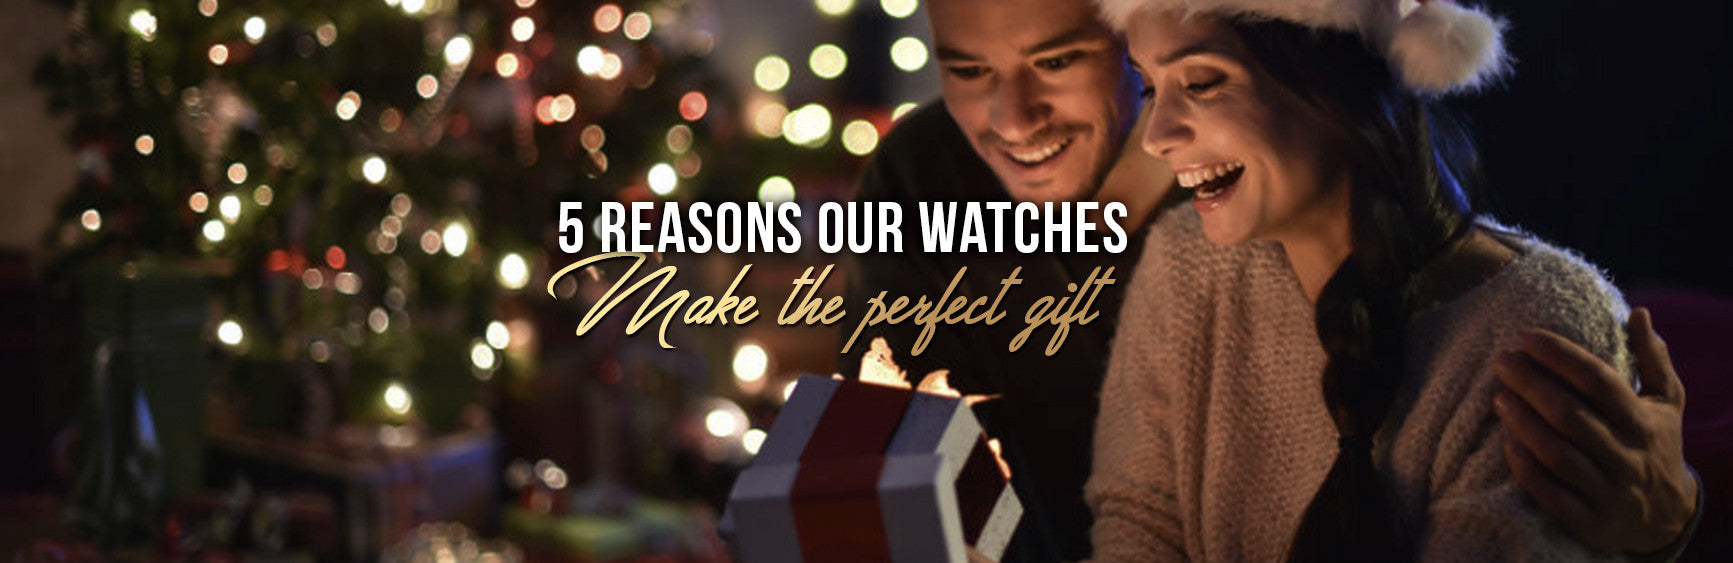 5 Reasons Why Our Watches Make The Perfect Christmas Gift